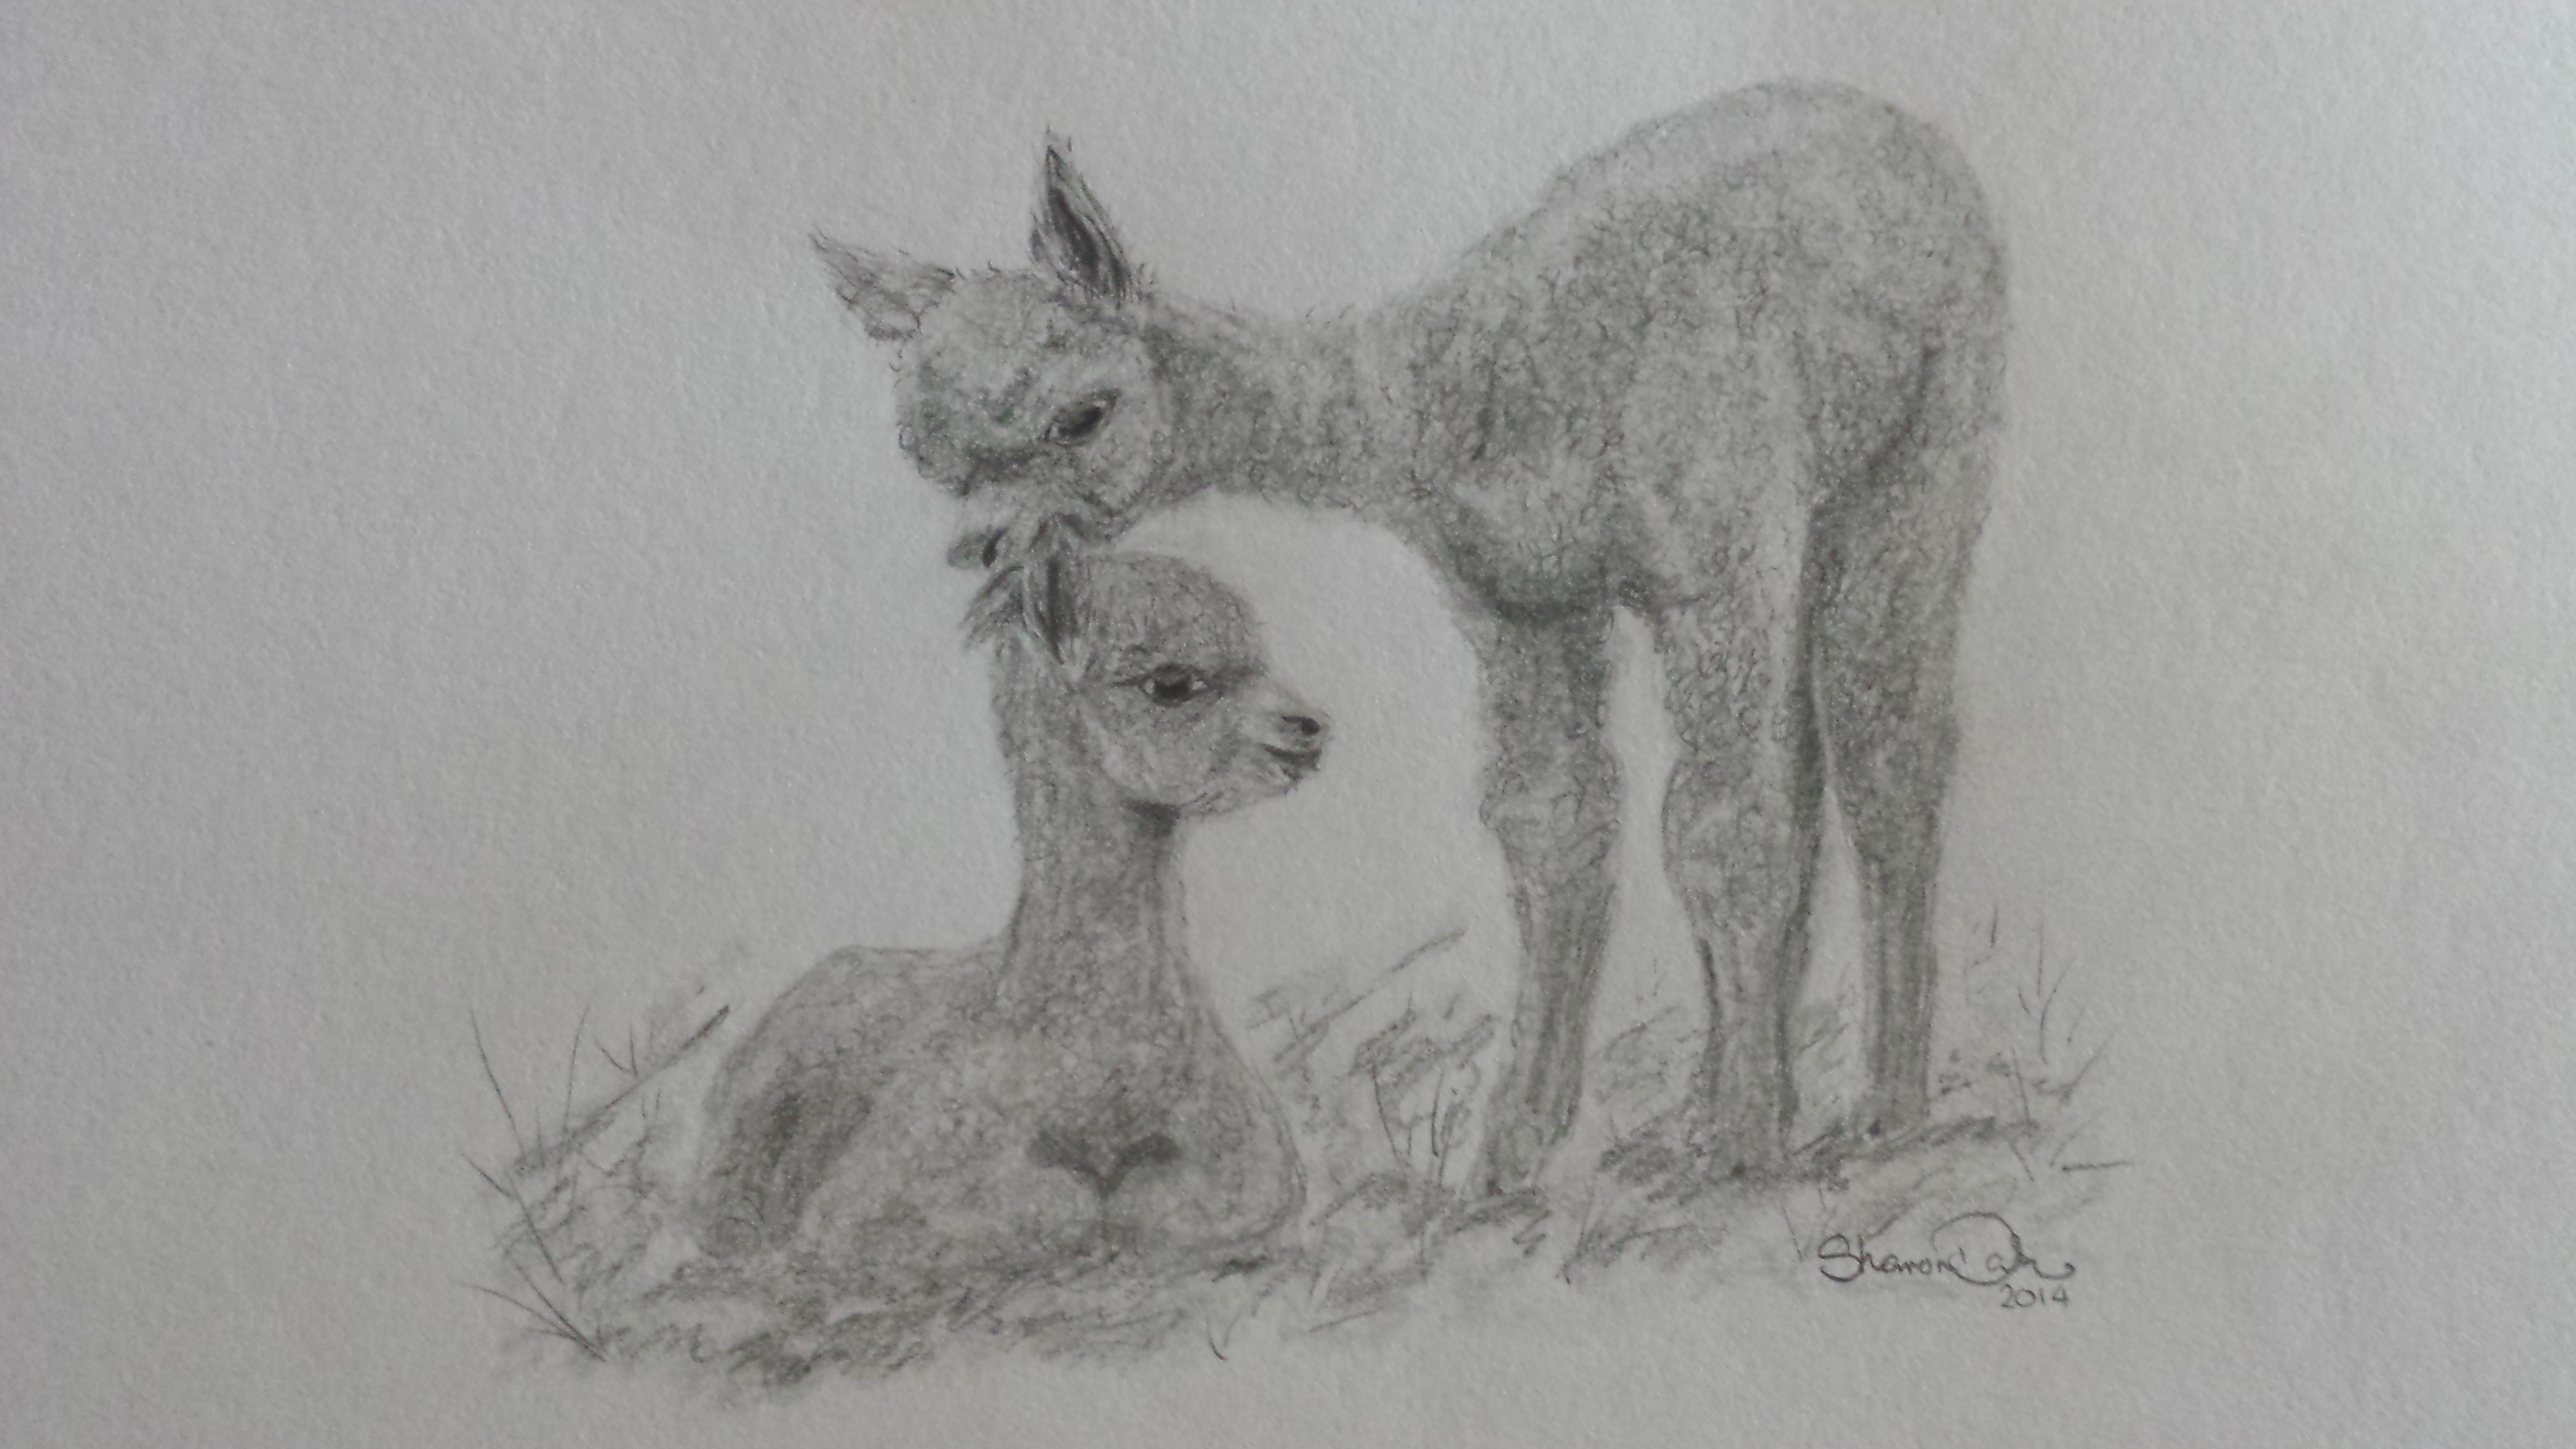 Cria drawing